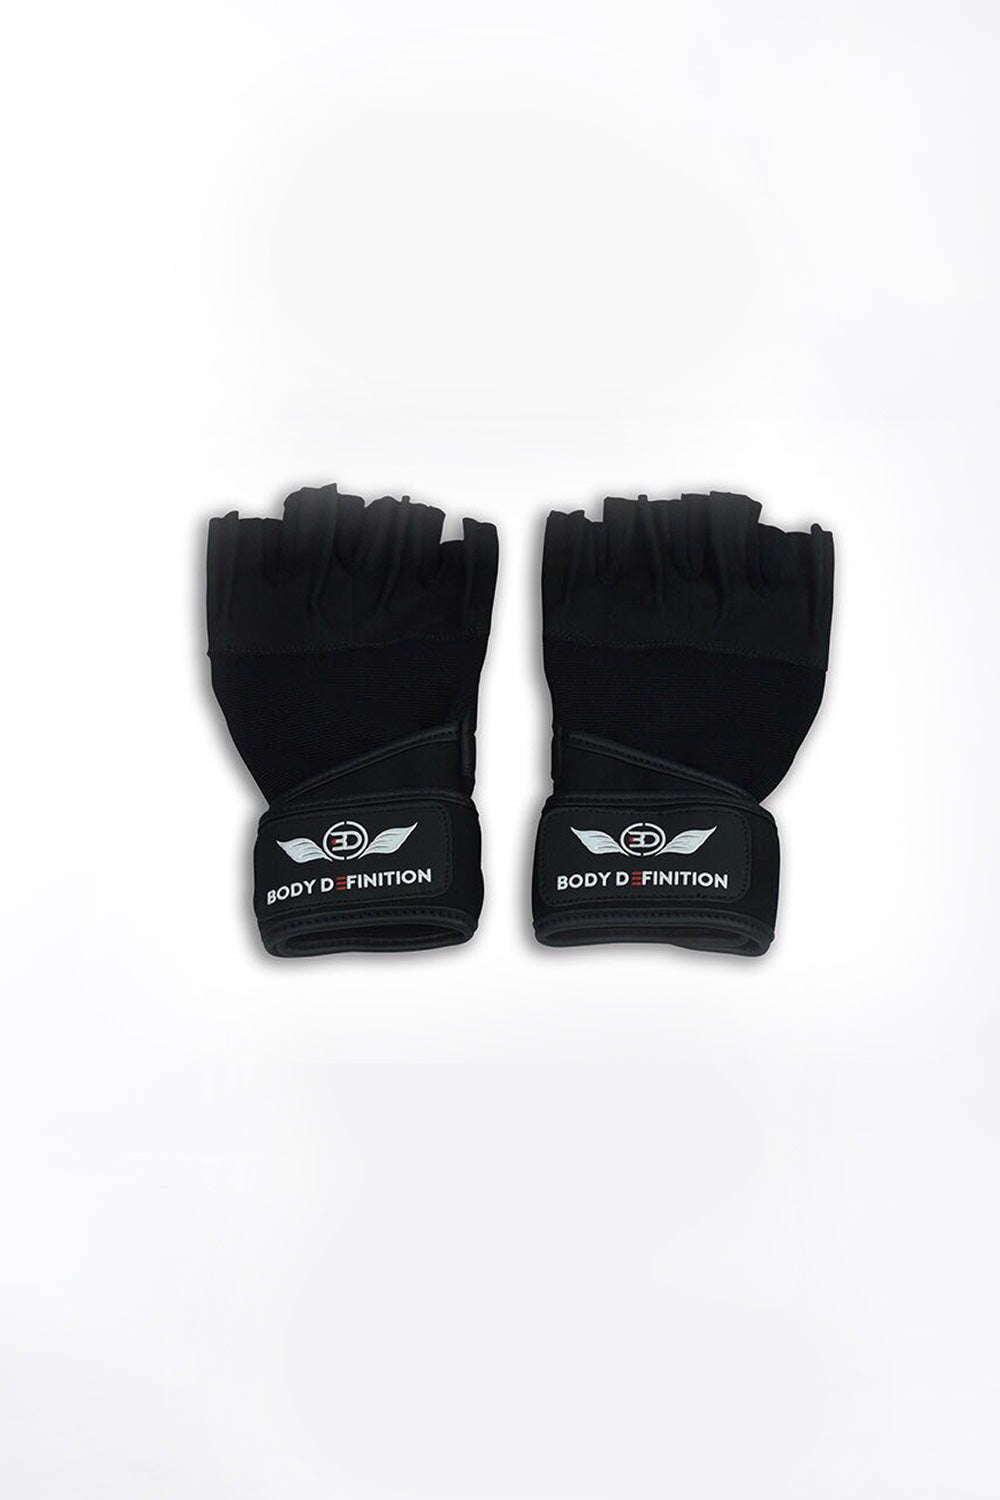 Mens Weight Lifting Gloves With Long Straps